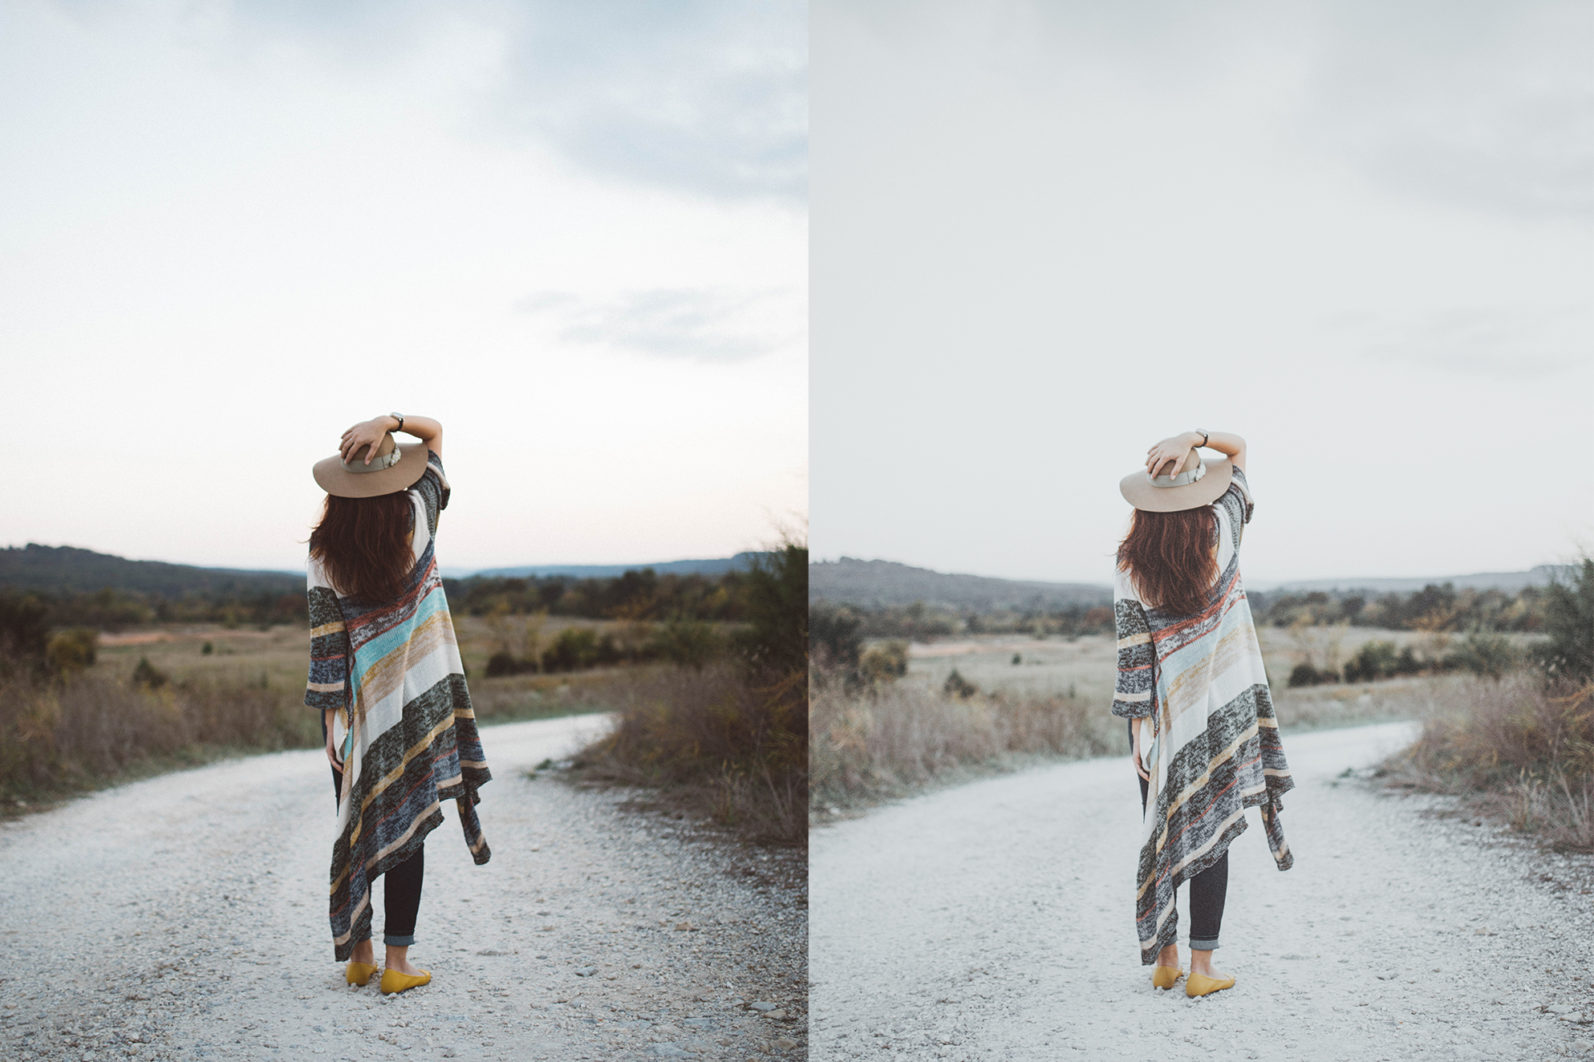 50 x TRAVEL BLOGGER PRESETS // Collect Memories // THE ONLY PRESETS YOU WILL EVER NEED - Preview 6 1 -